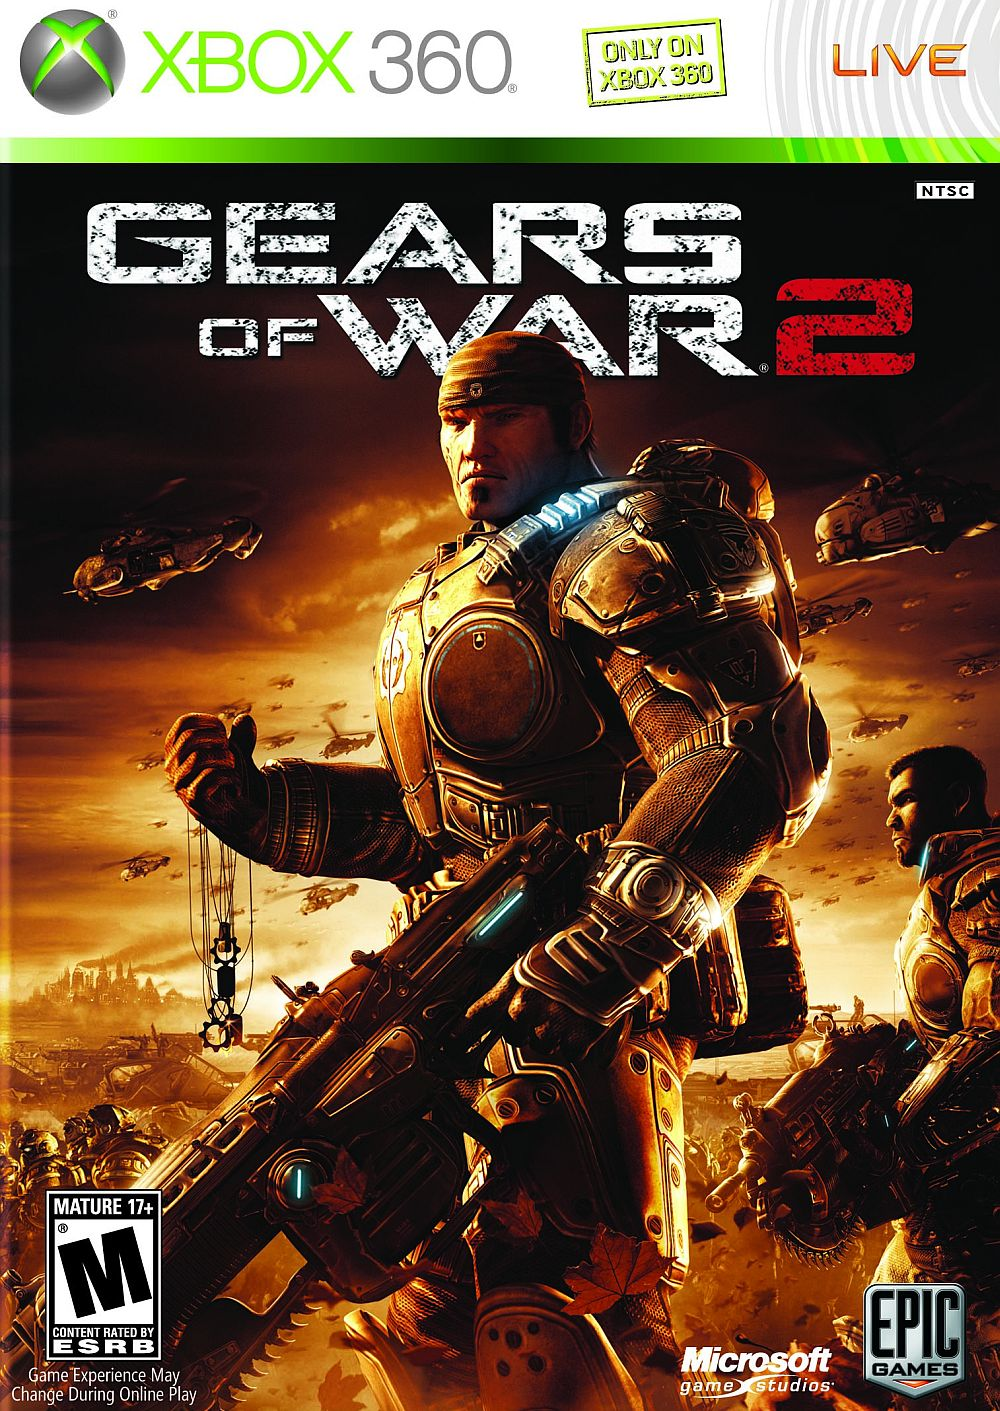 Gears Of War 2 + 11 Games |  XBOX 360 ACCOUNT